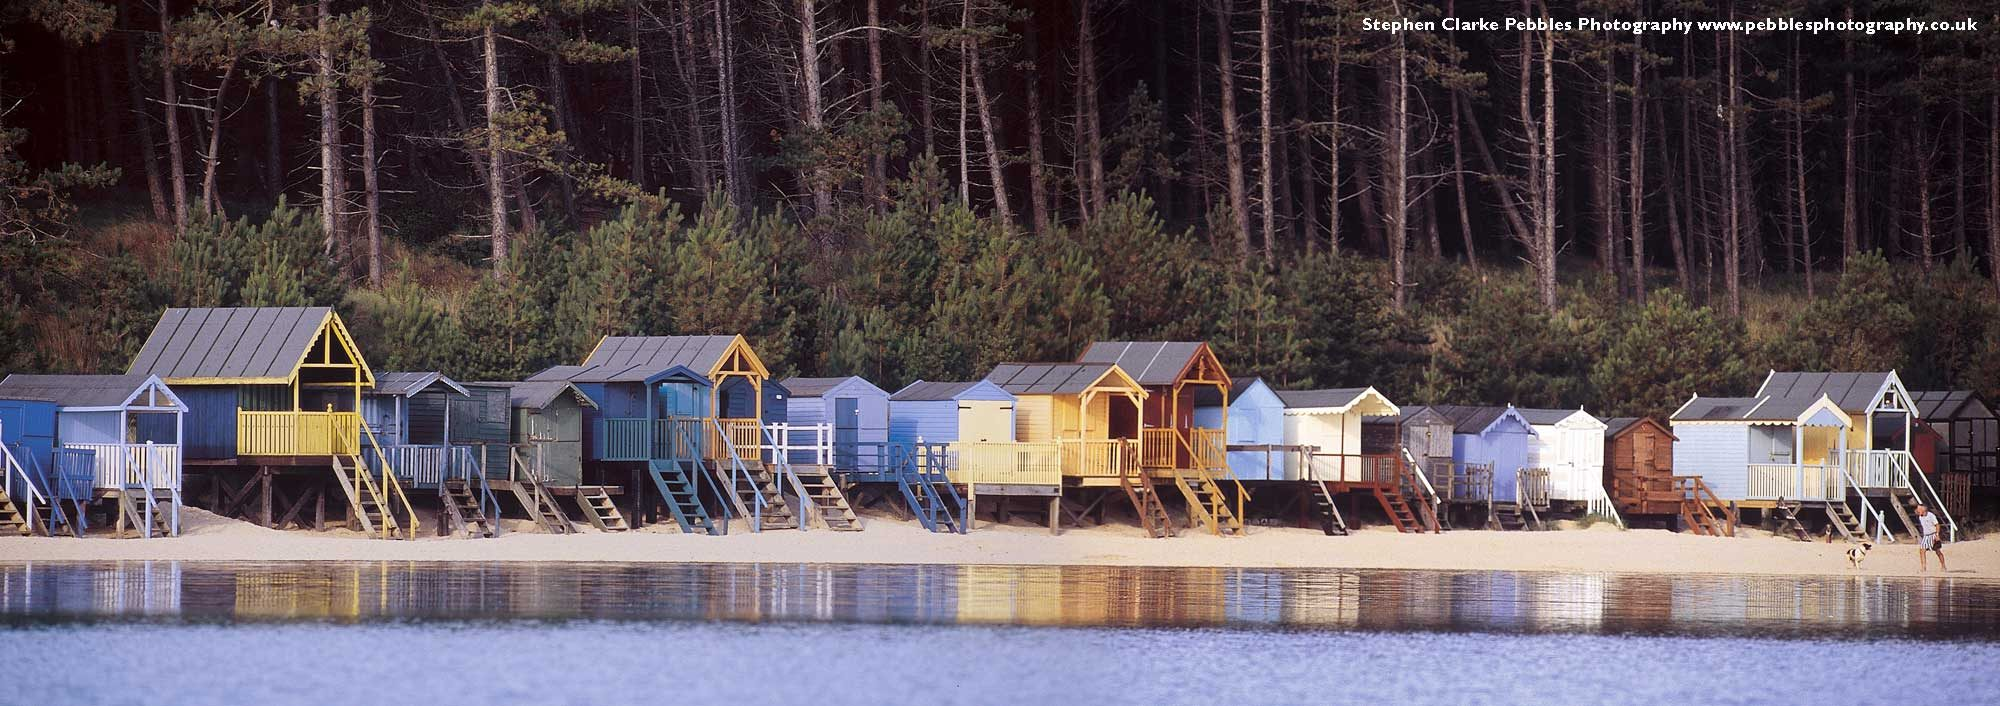 Background image of Beach huts at Wells